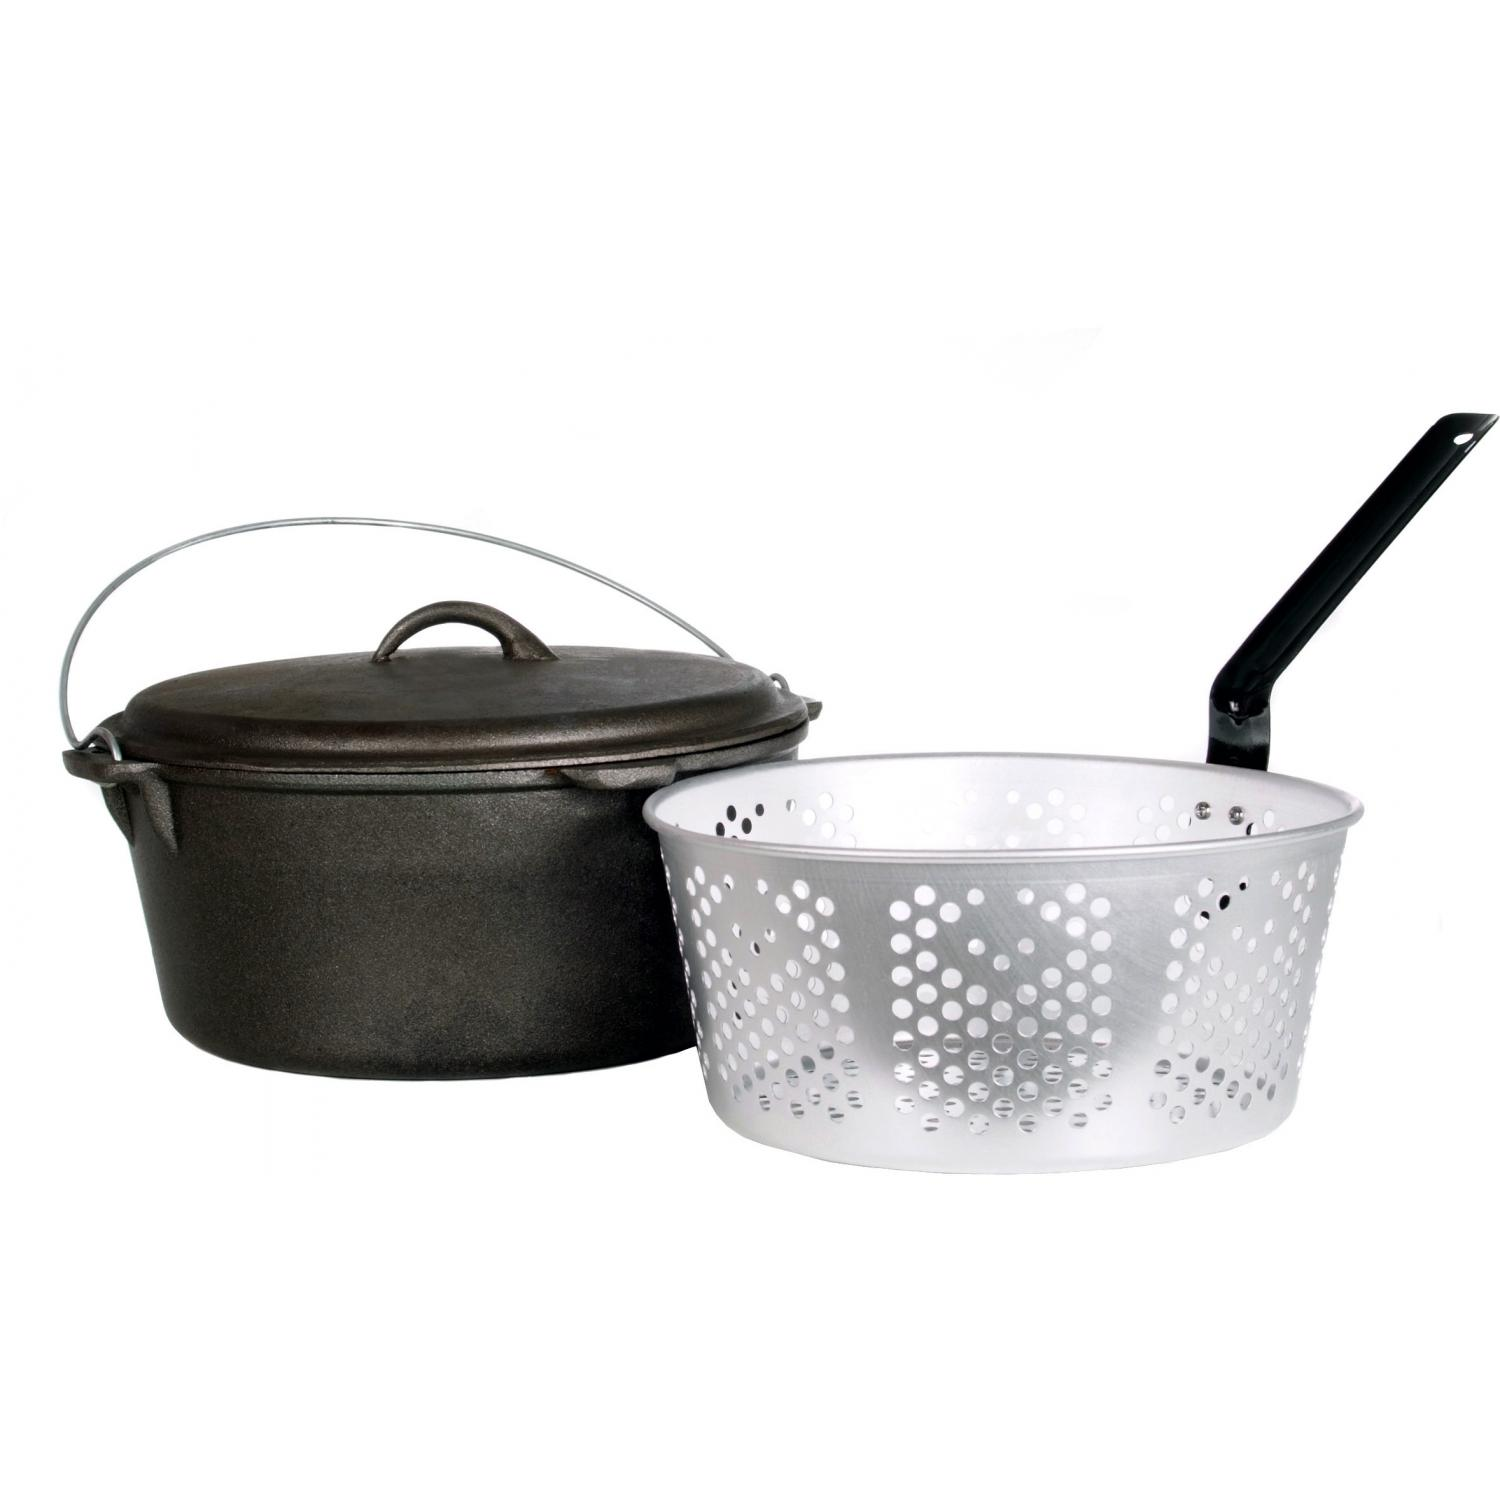 Cajun Cookware Dutch Ovens With Fry Basket 9 Quart Seasoned Cast Iron Dutch Oven